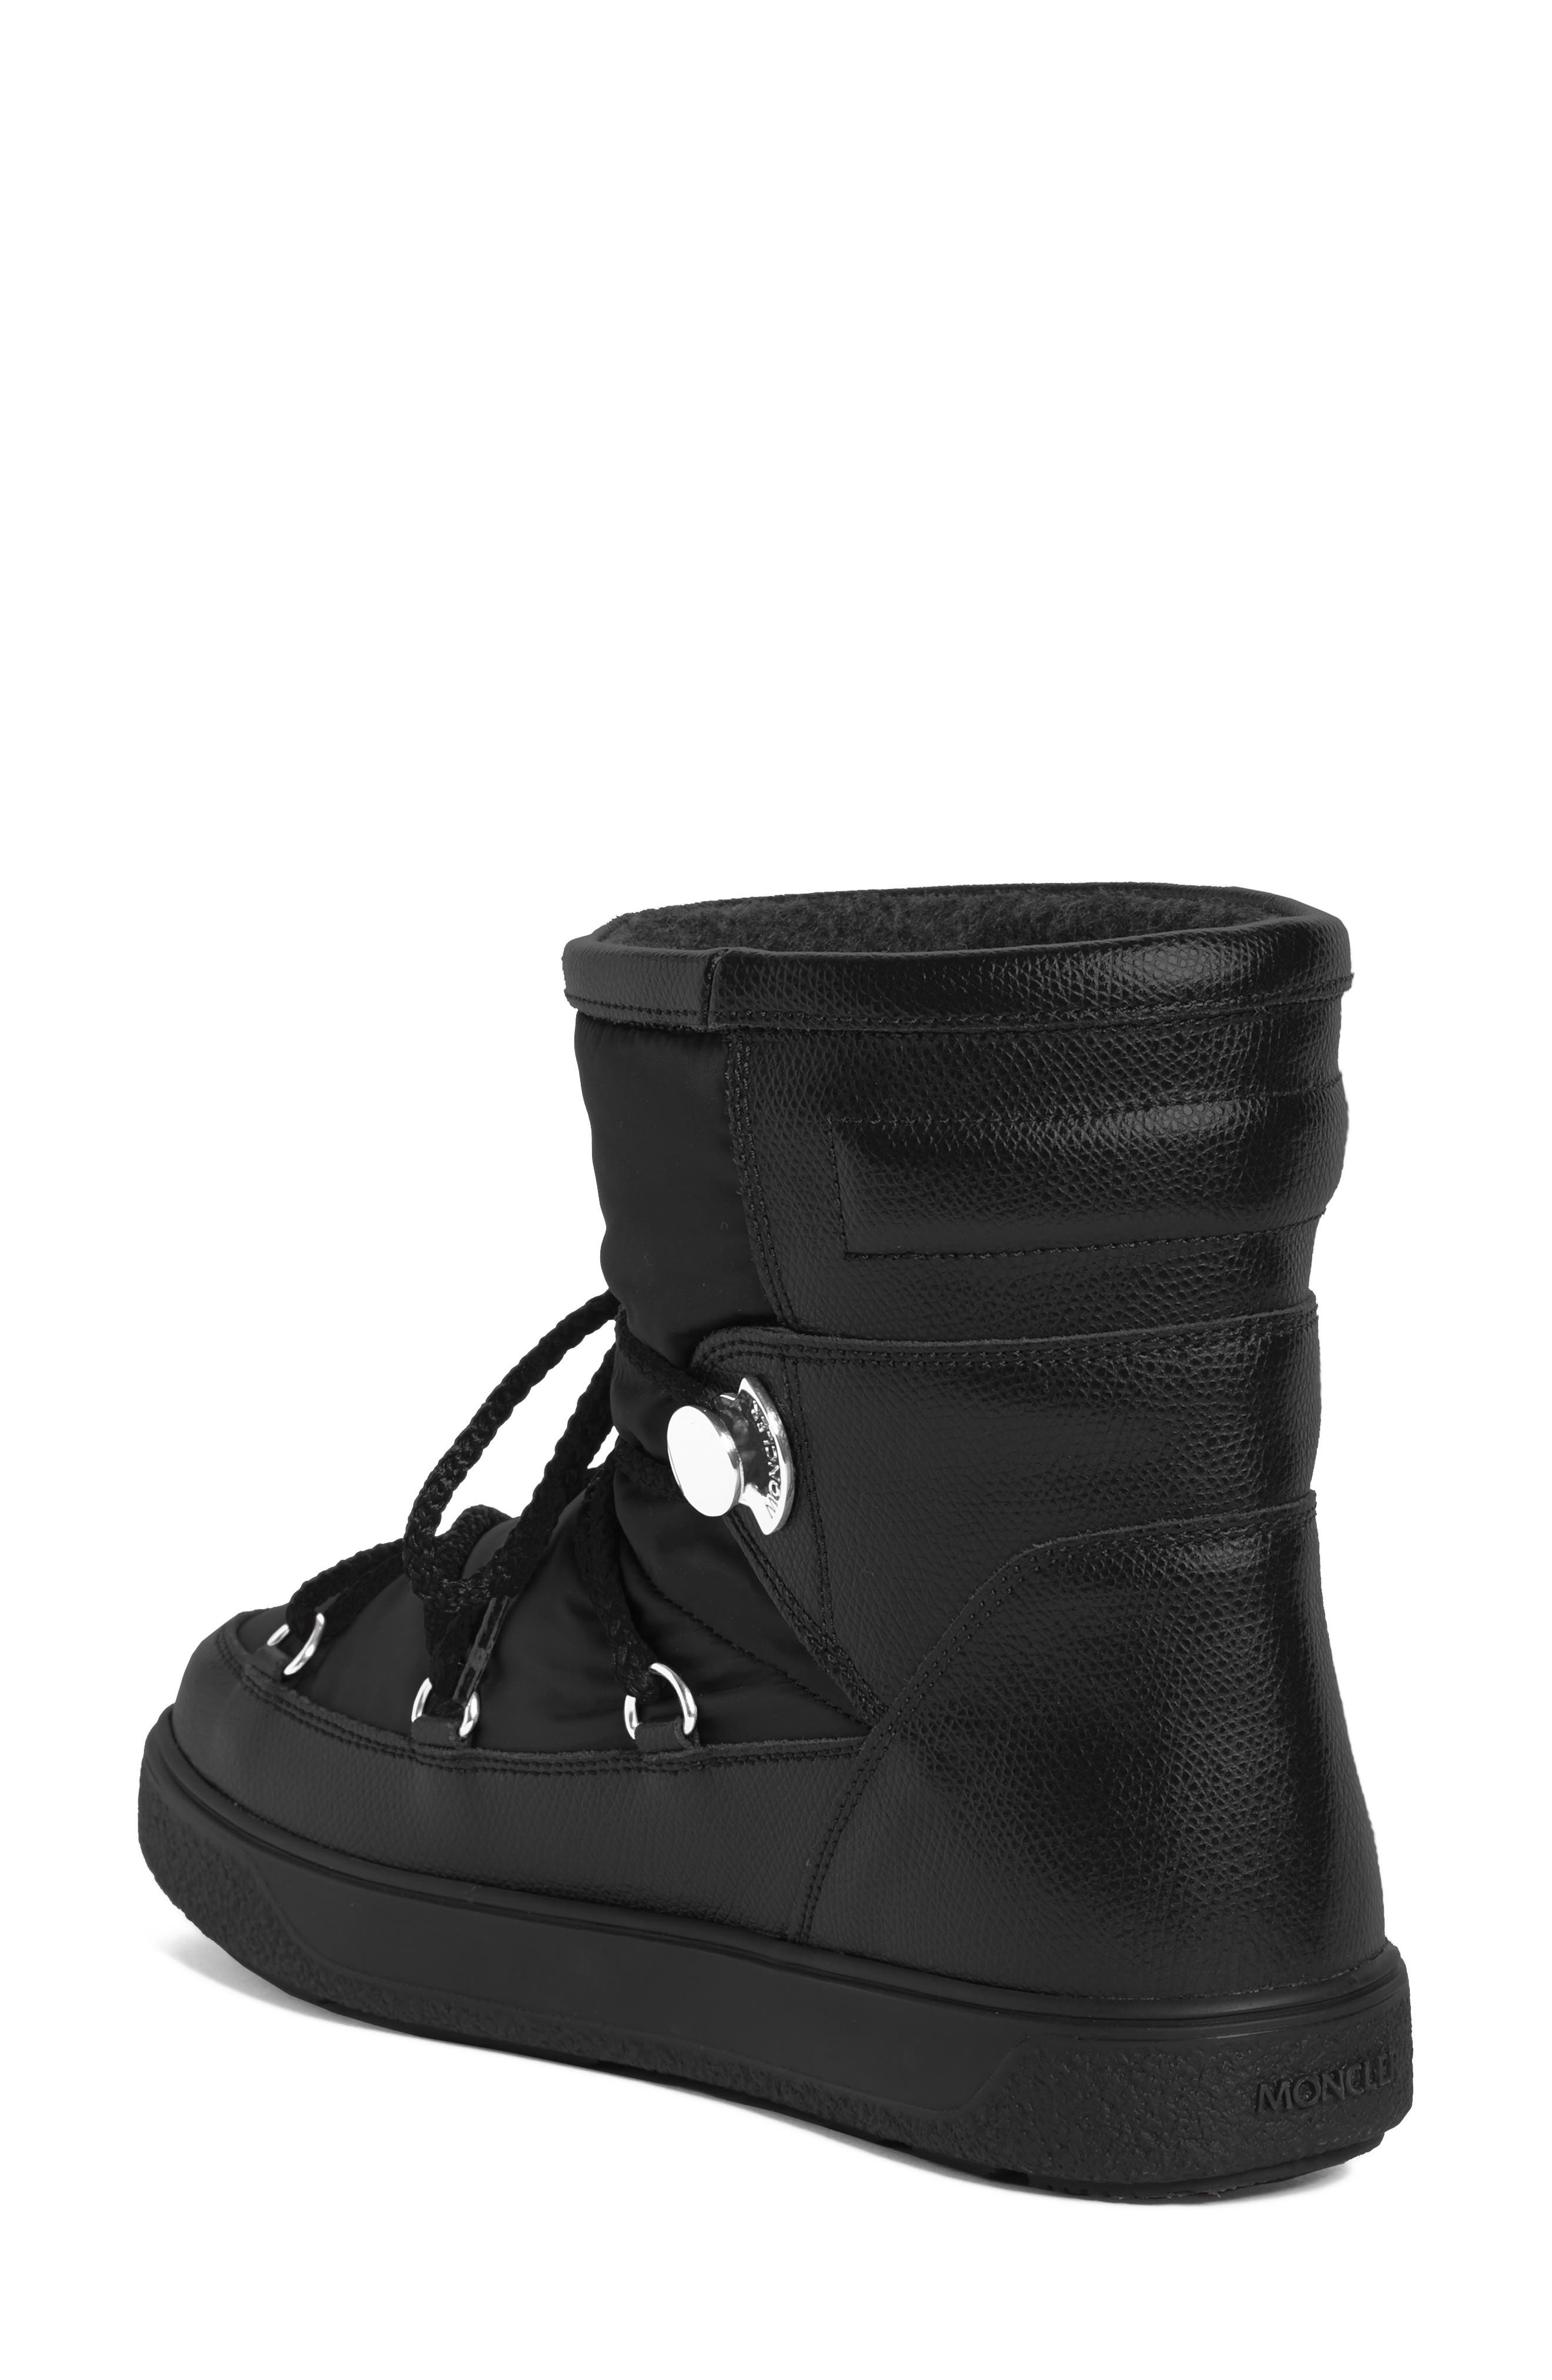 New Fanny Stivale Short Moon Boots,                             Alternate thumbnail 2, color,                             Black